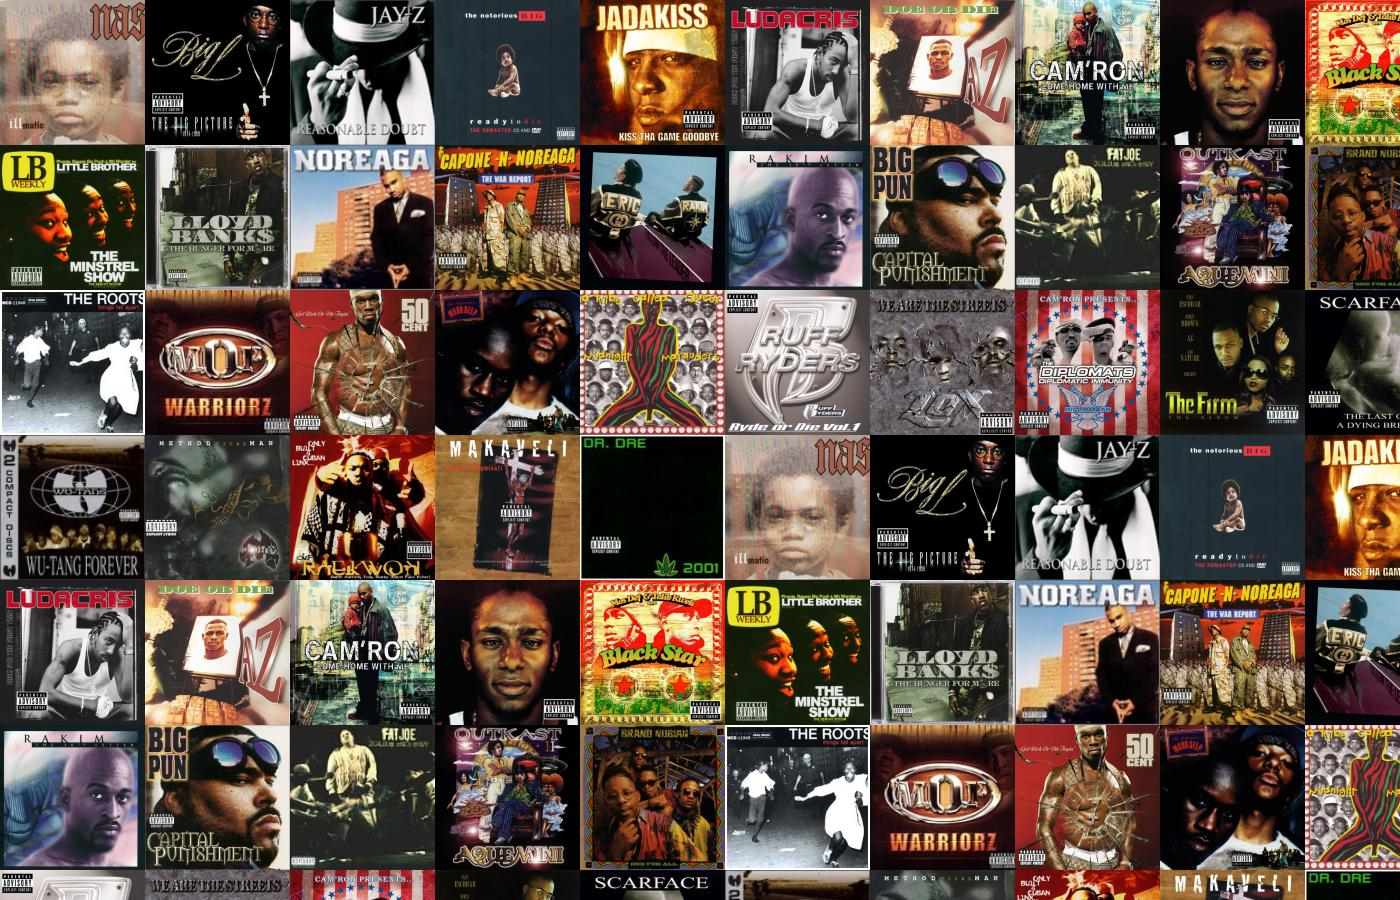 Things Fall Apart Wallpaper The Roots Nas Illmatic Big L Big Picture Jay Wallpaper 171 Tiled